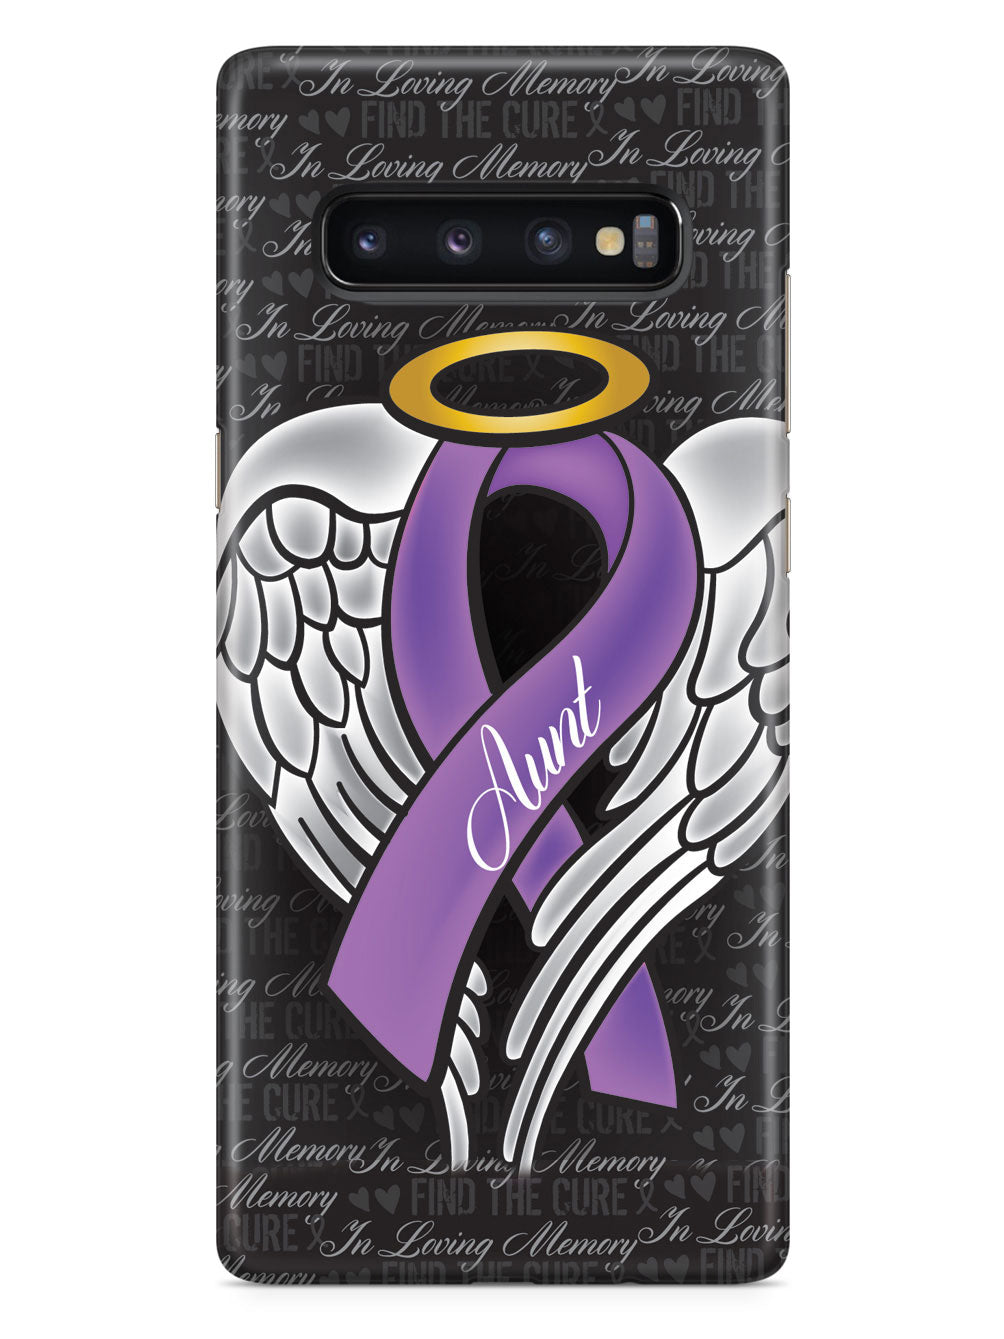 In Loving Memory of My Aunt - Purple Ribbon Case